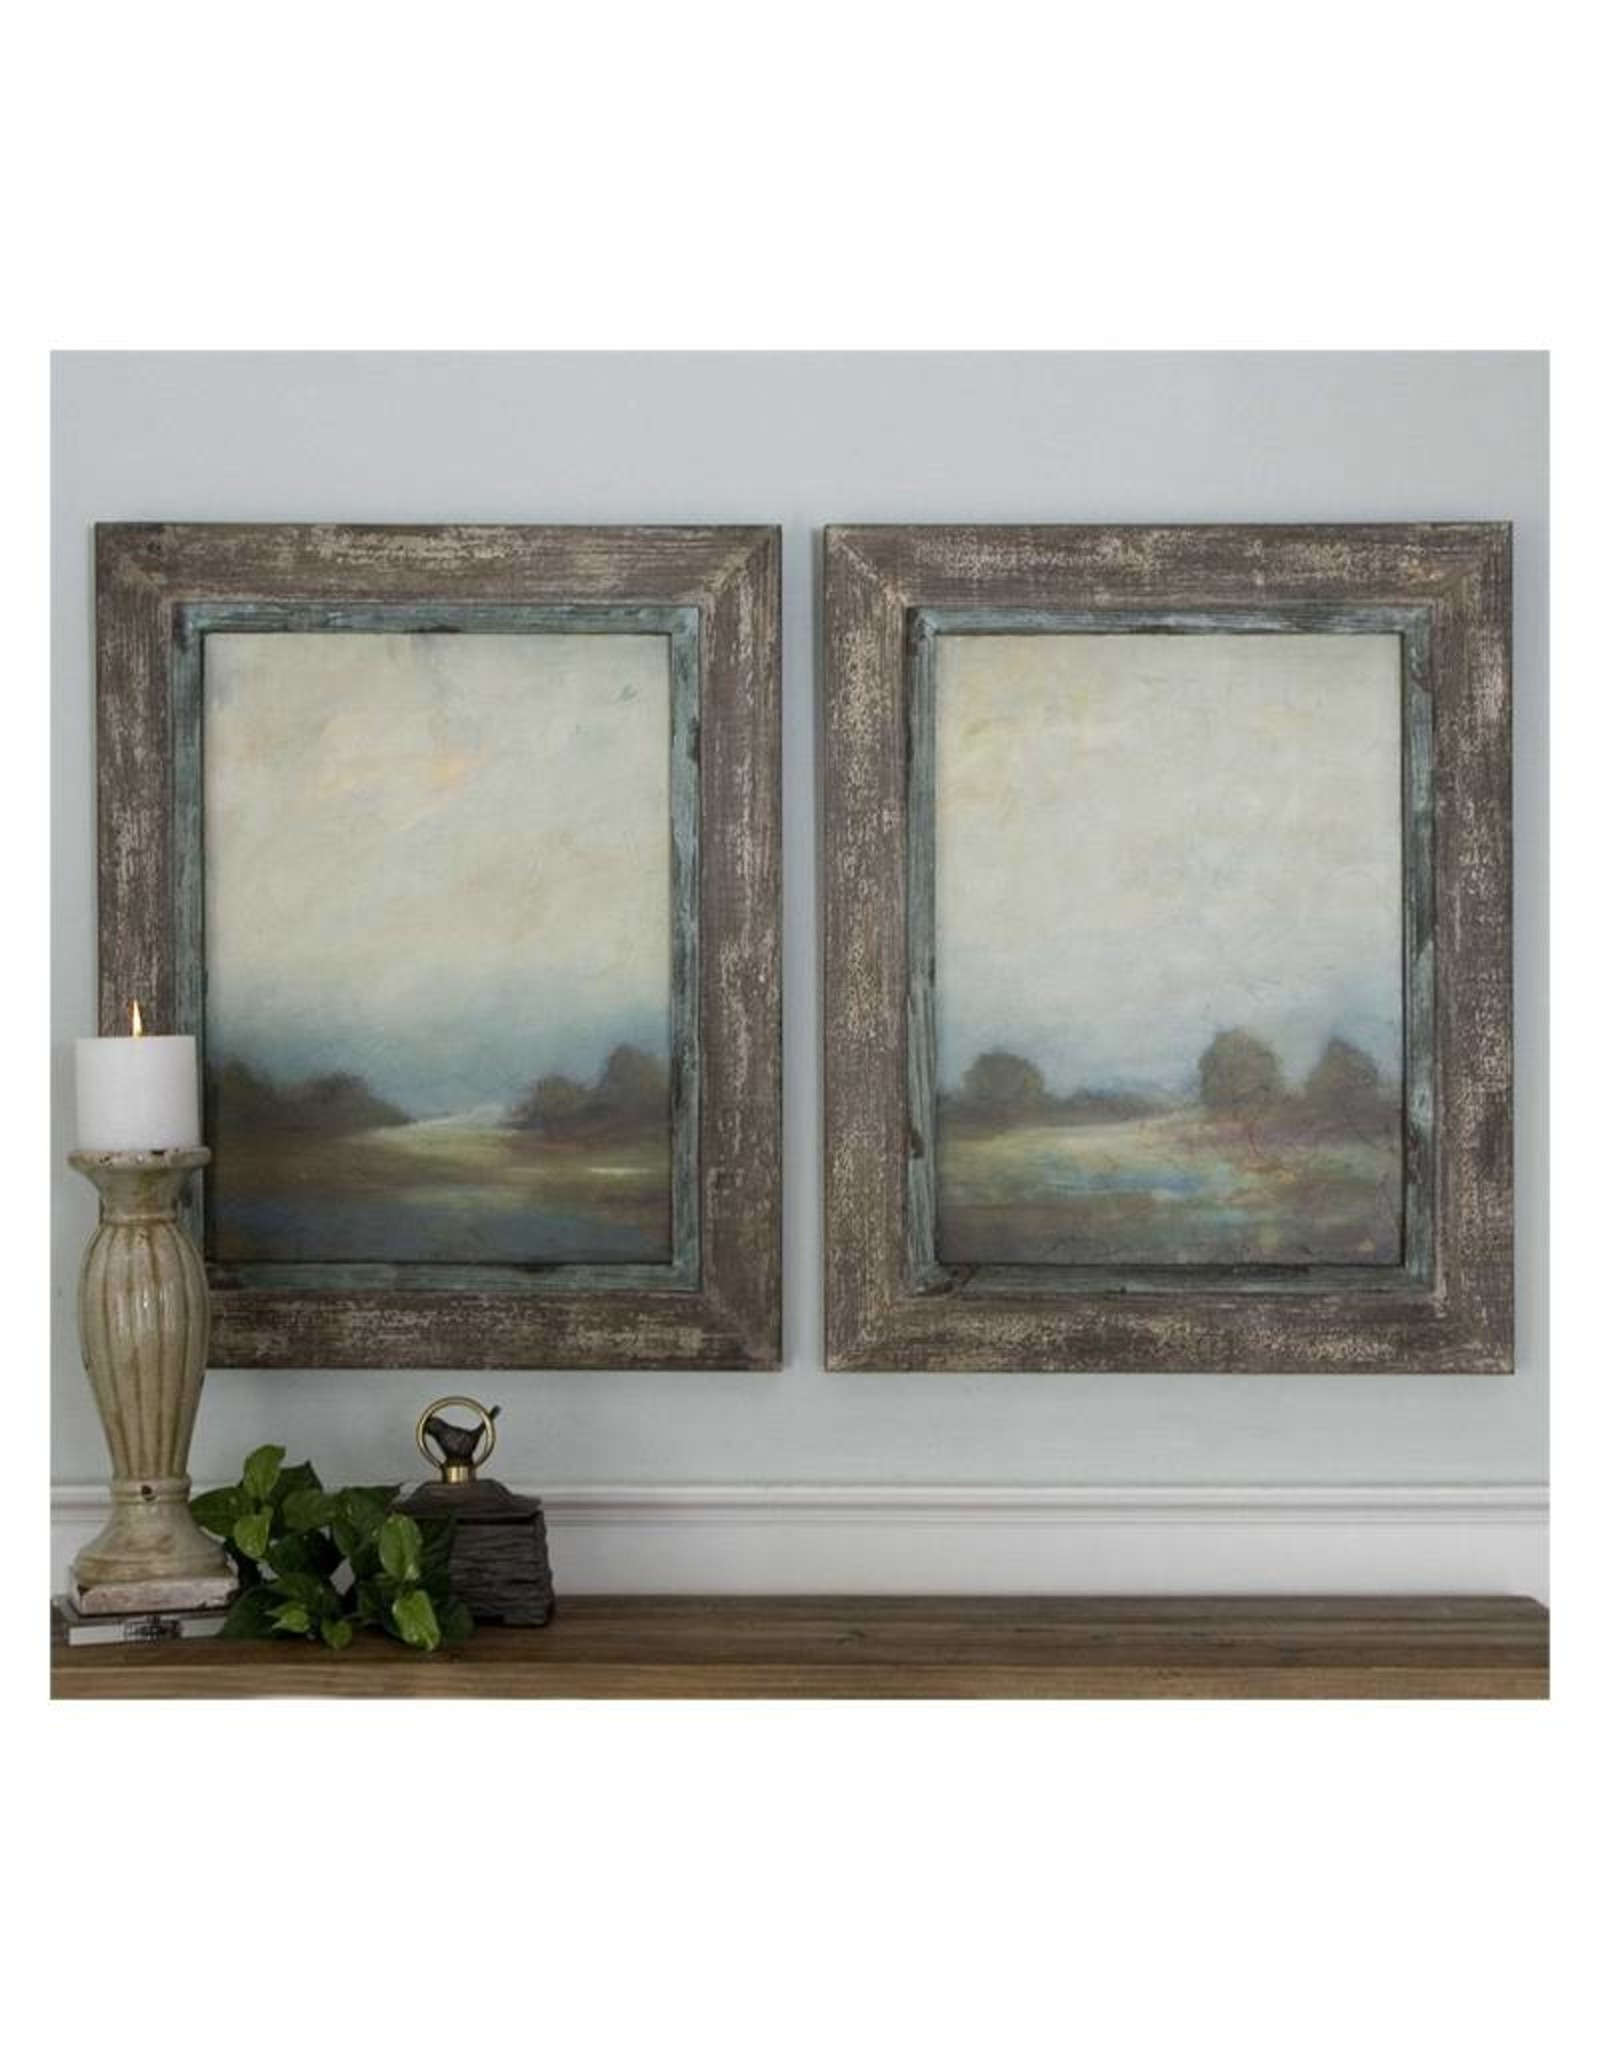 Morning Vistas (Set of 2)